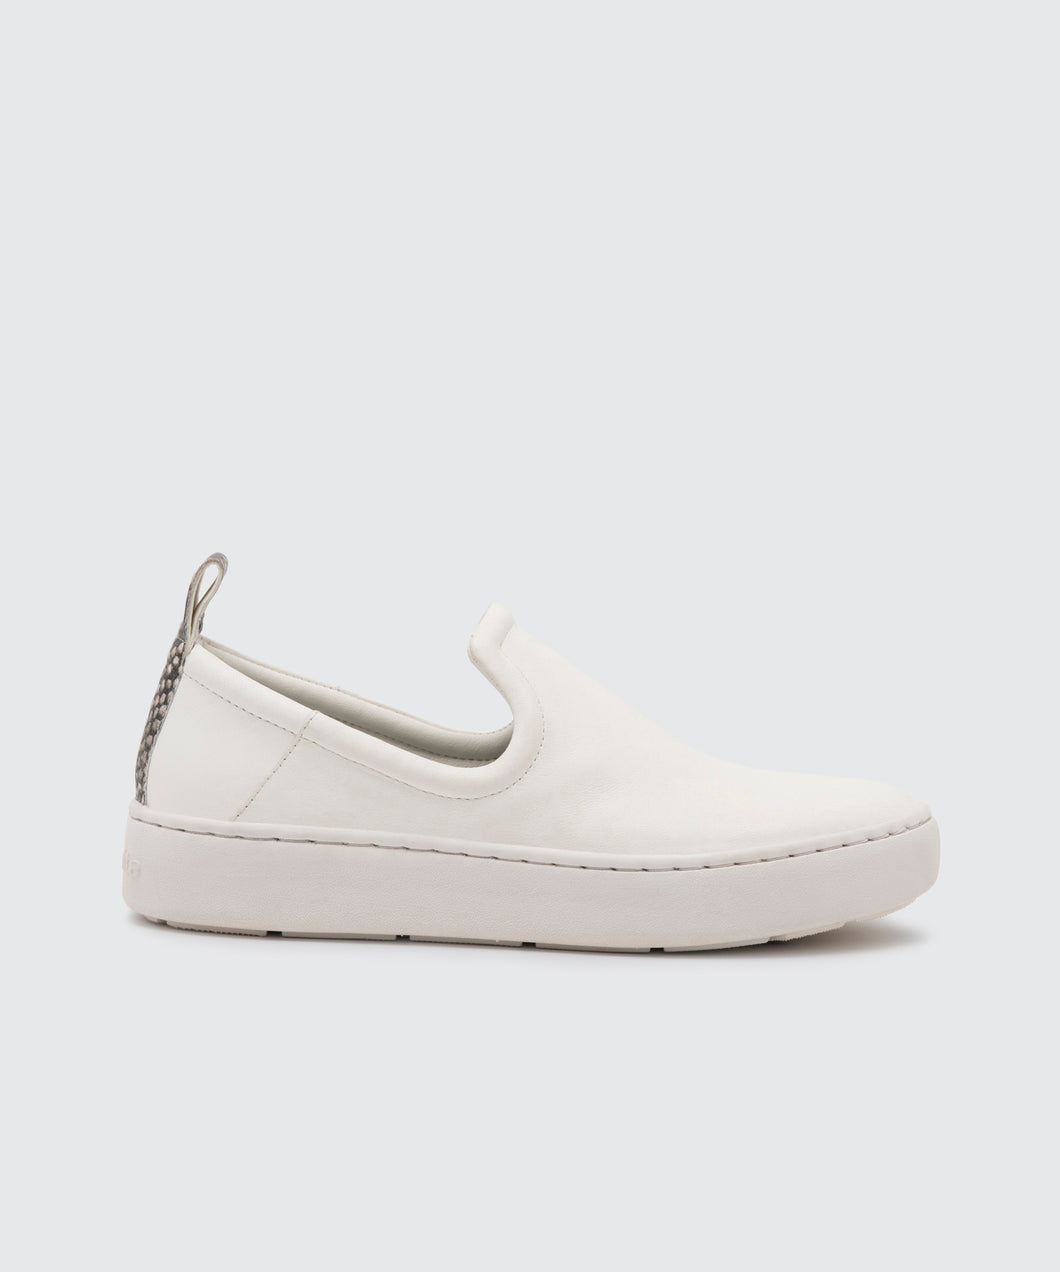 TAG SNEAKERS WHITE -   Dolce Vita